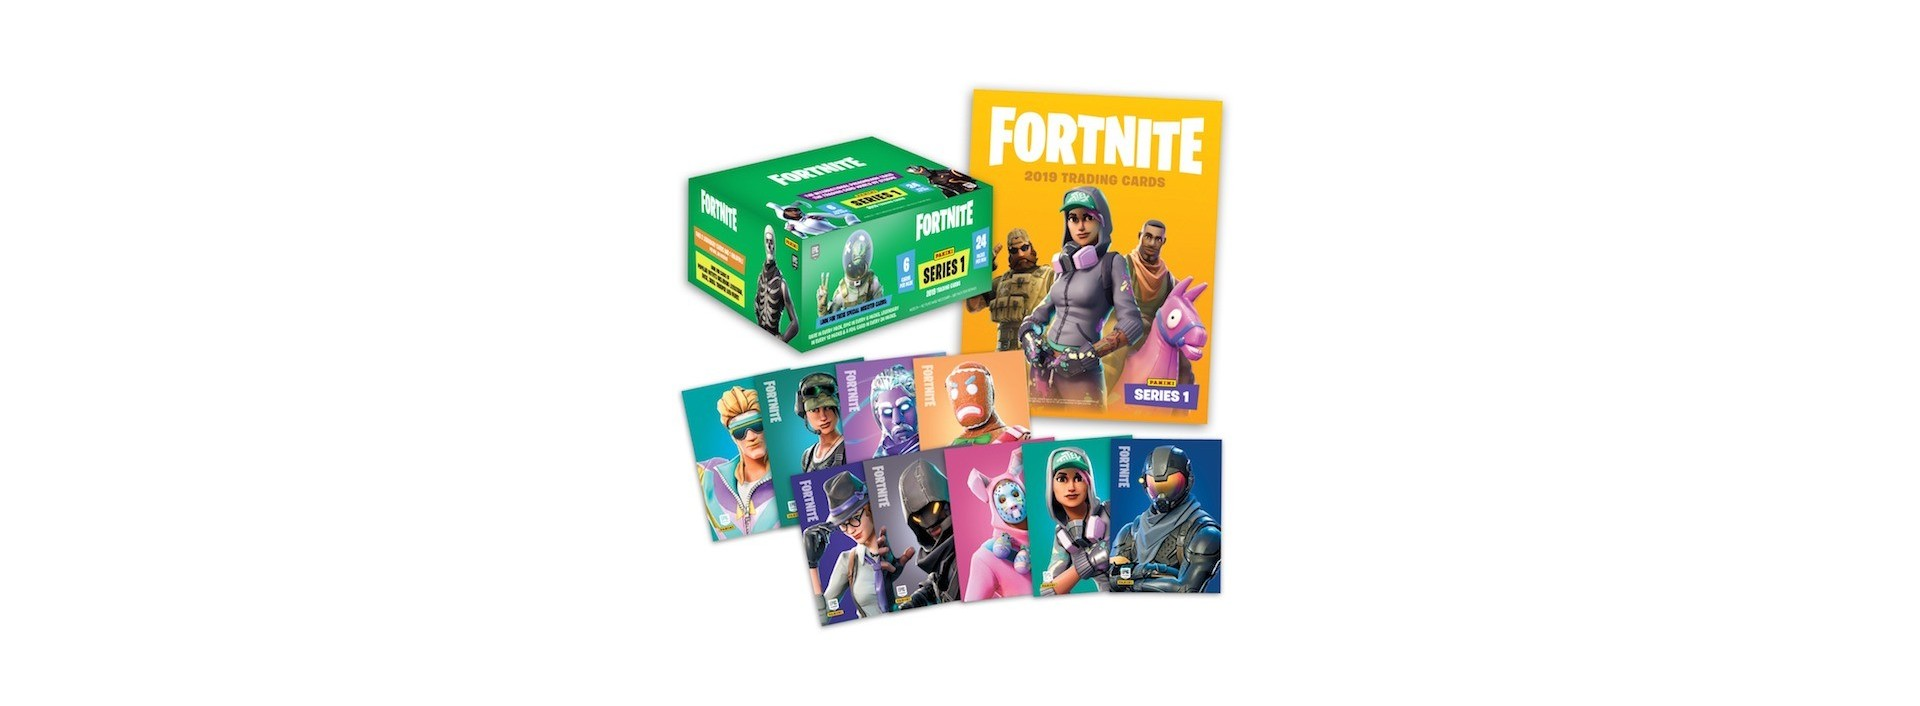 FORTNITE SERIES 1